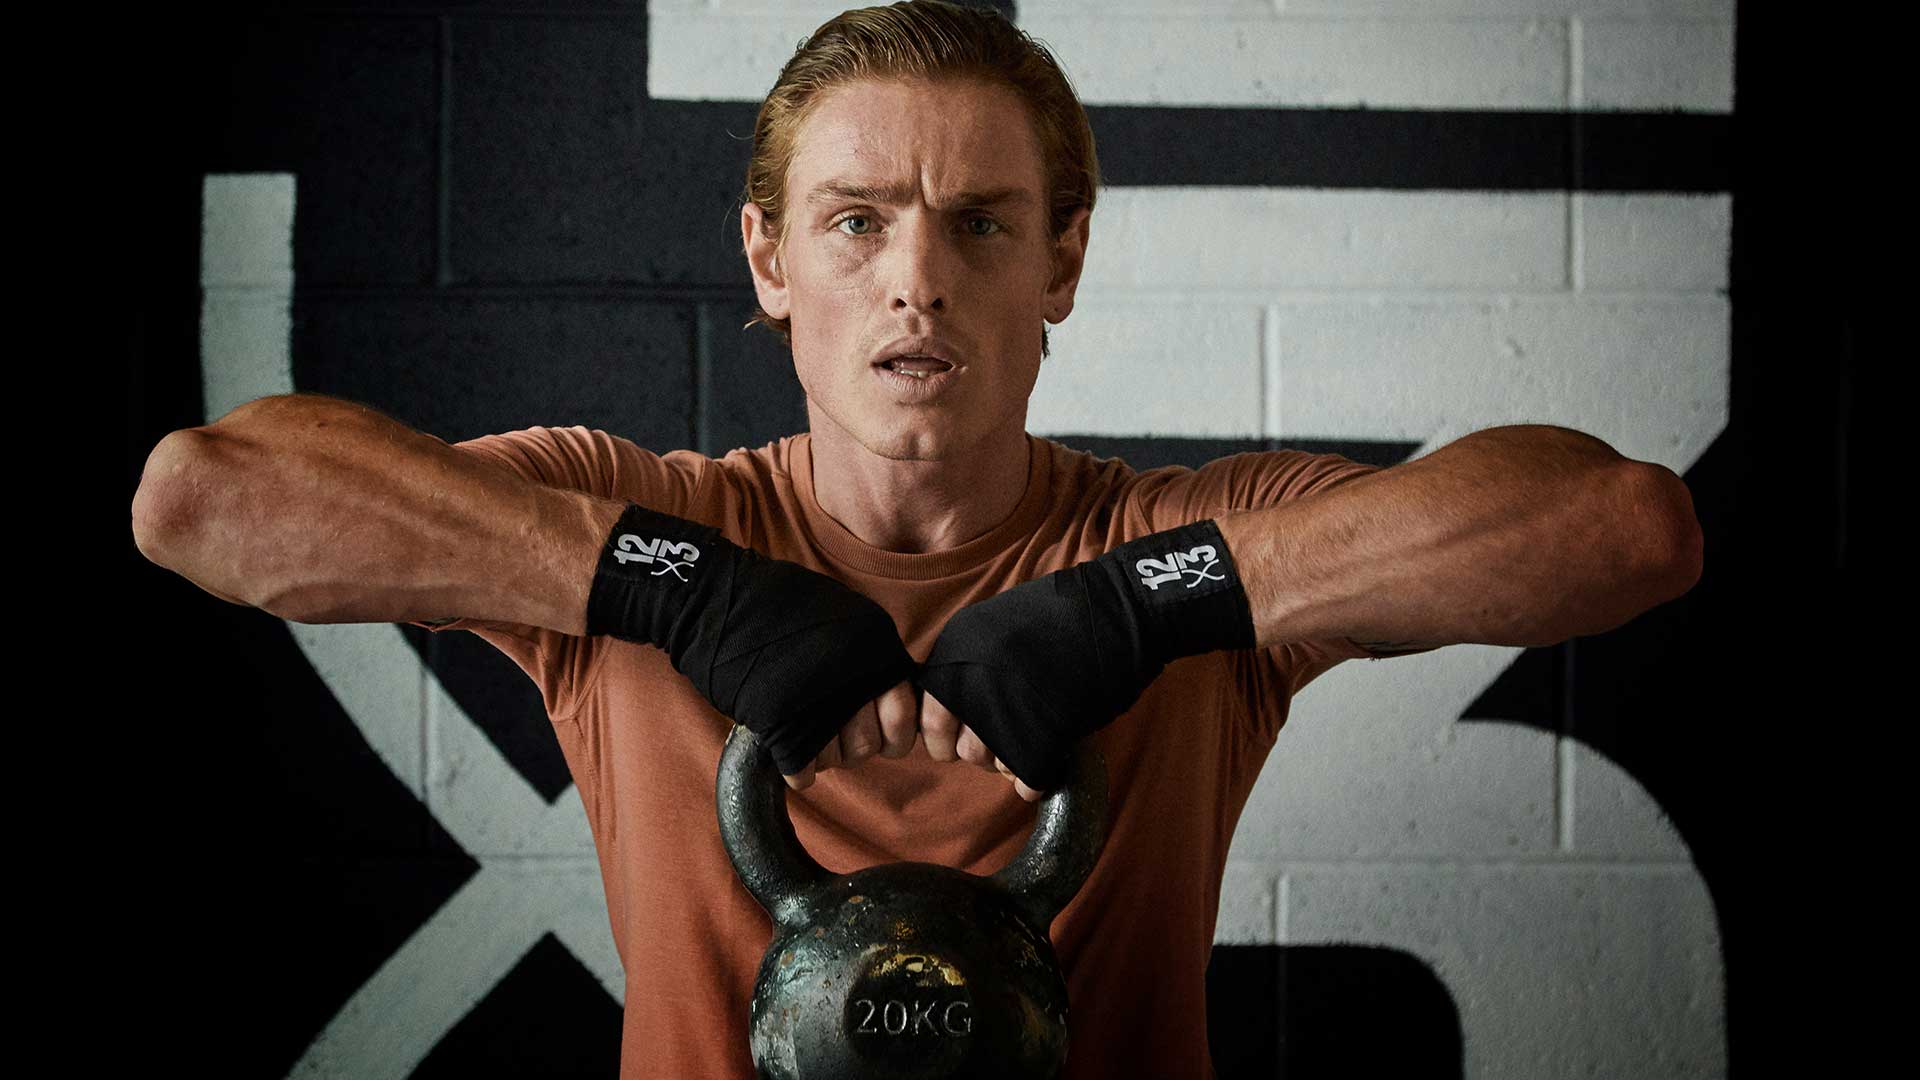 man pulling up weight in gym